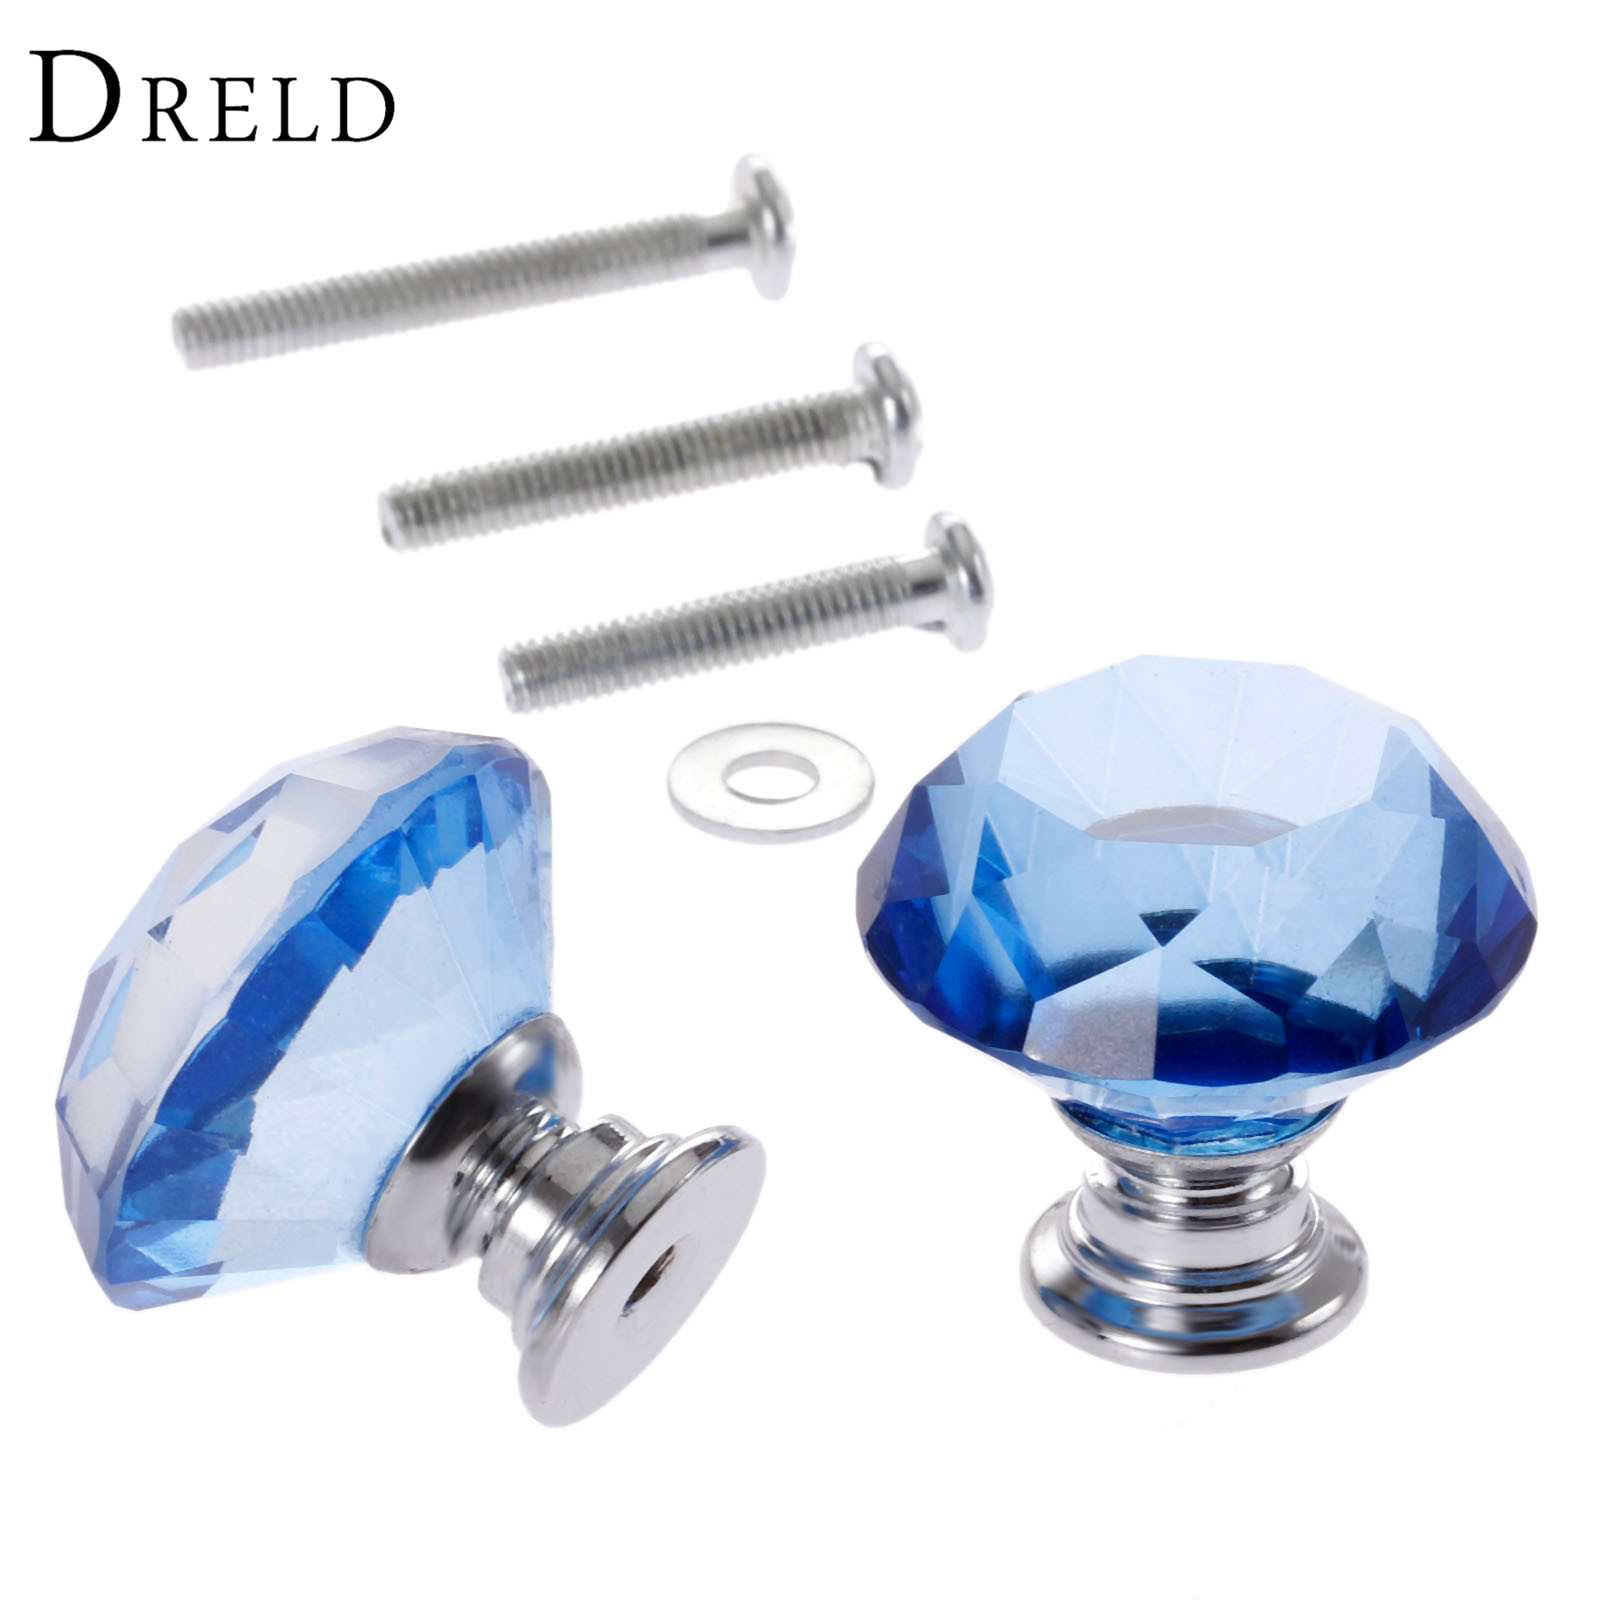 DRELD 2Pcs 30mm Diamond Crystal Drawer Pulls Glass Door Cabinet Wardrobe Pull Knobs Blue Furniture Handles + 6Pcs Screws 10 pcs 30mm diamond shape crystal glass drawer cabinet knobs and pull handles kitchen door wardrobe hardware accessories